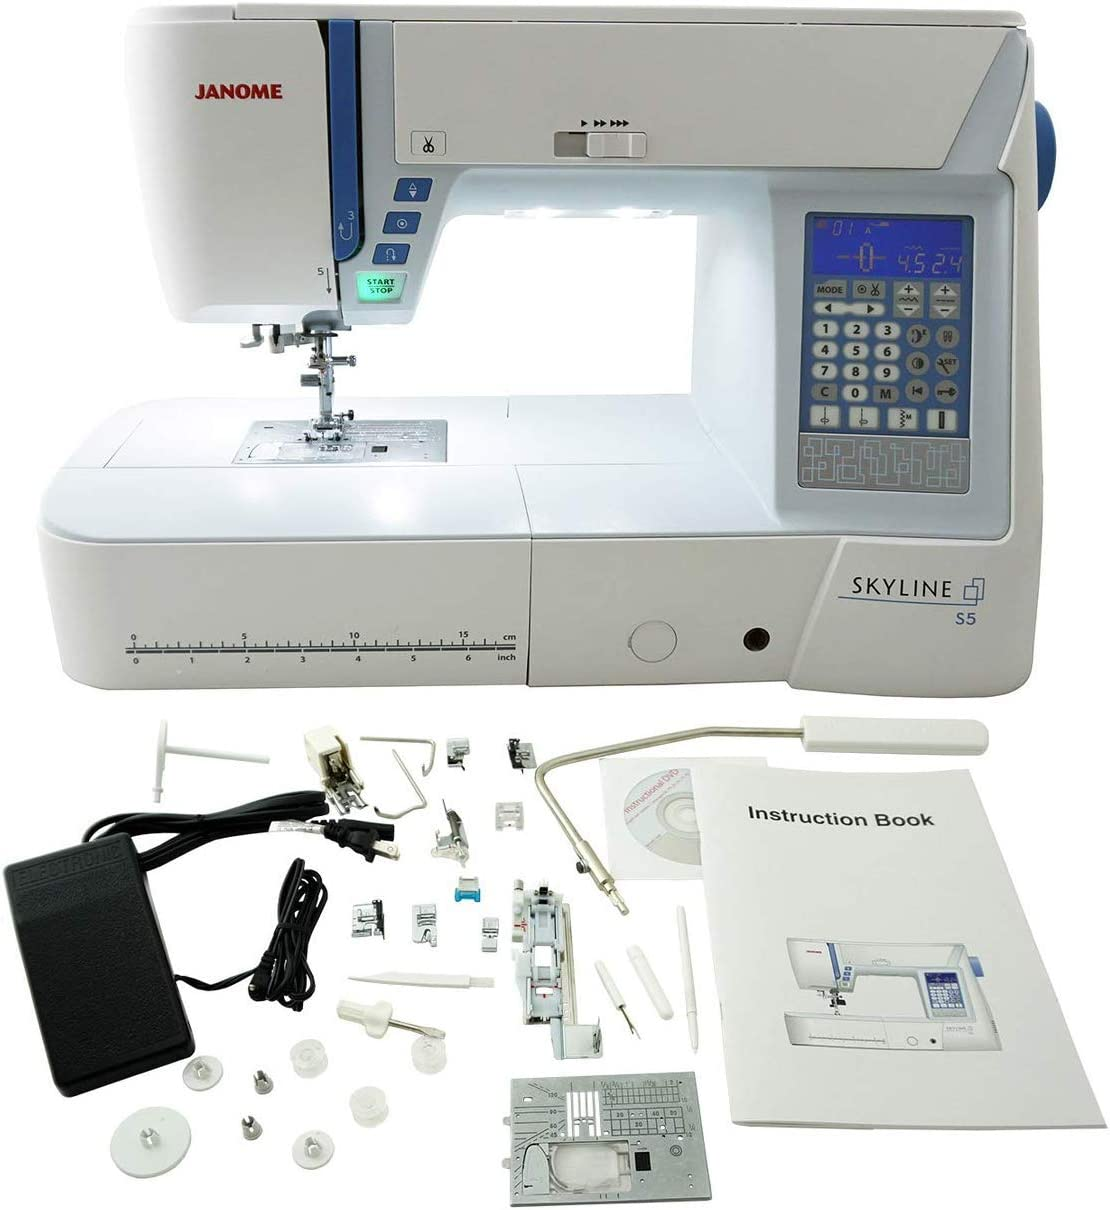 Janome S5 Computerized Sewing Machine